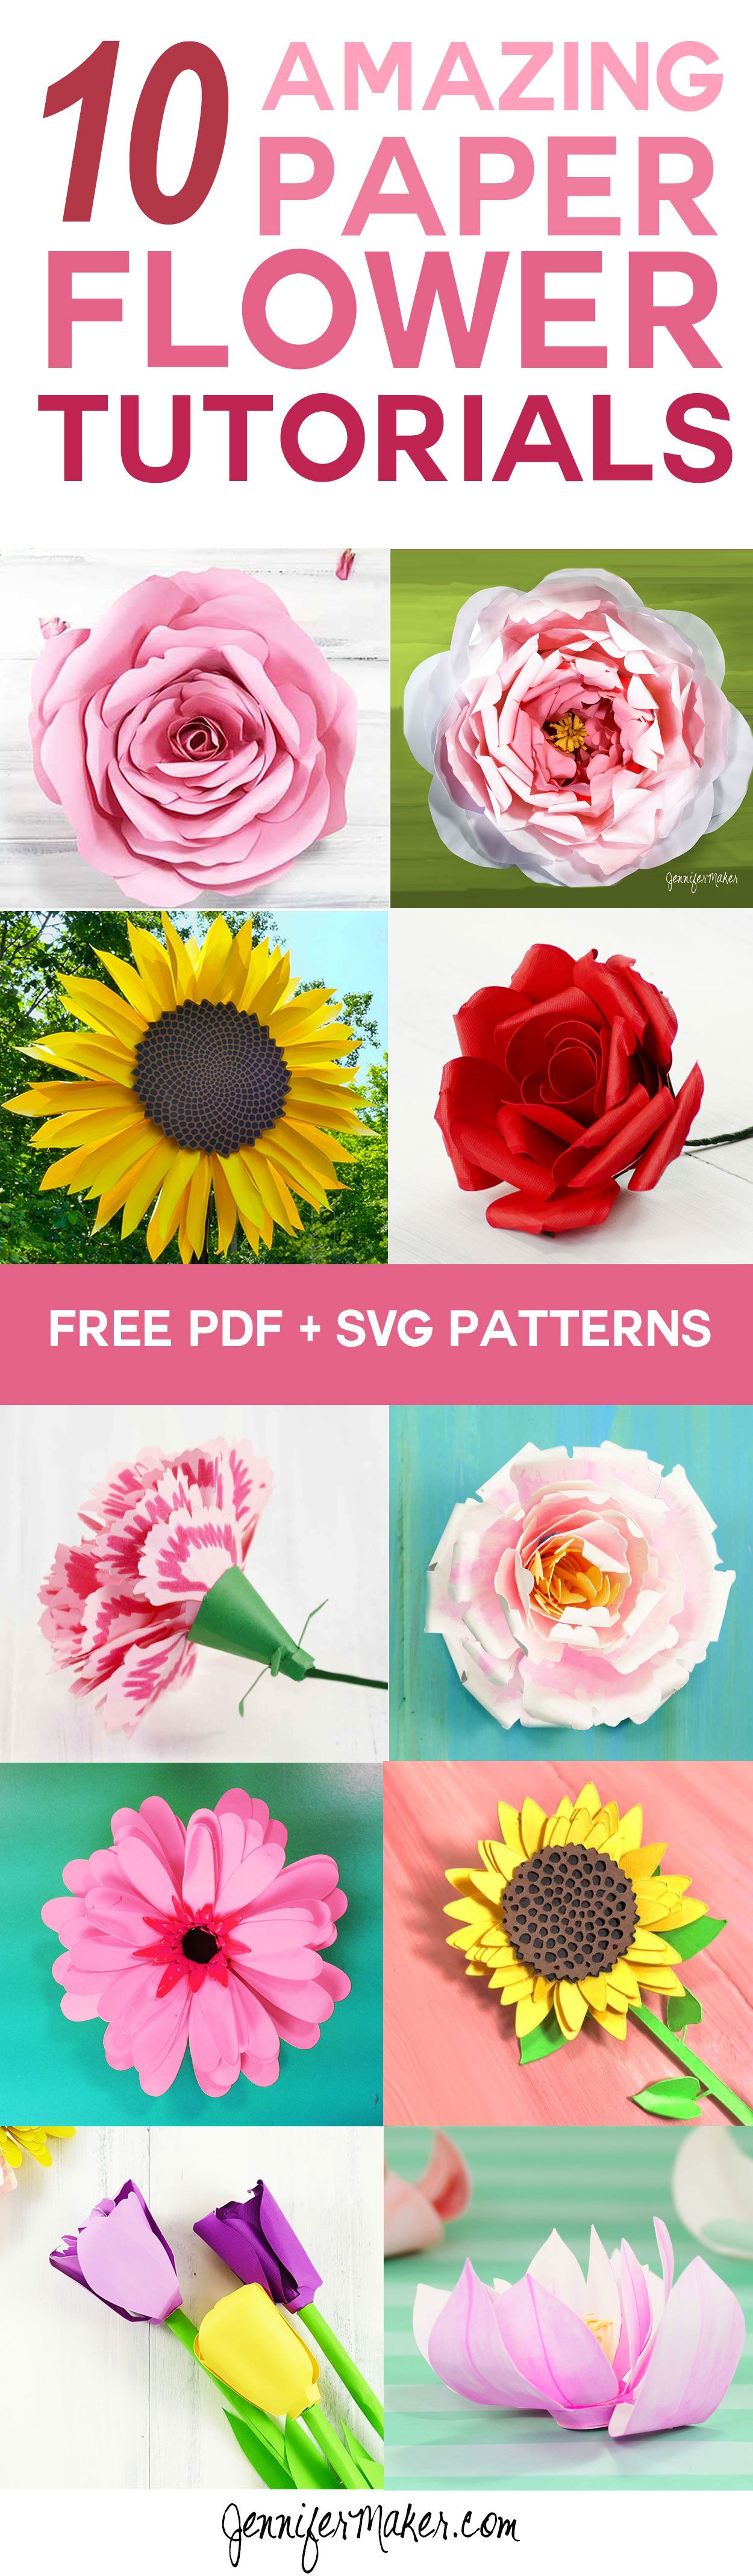 How to make diy paper flowers paper flower tutorial flower 10 paper flower tutorials with free pdfsvg patterns how to make diy paper mightylinksfo